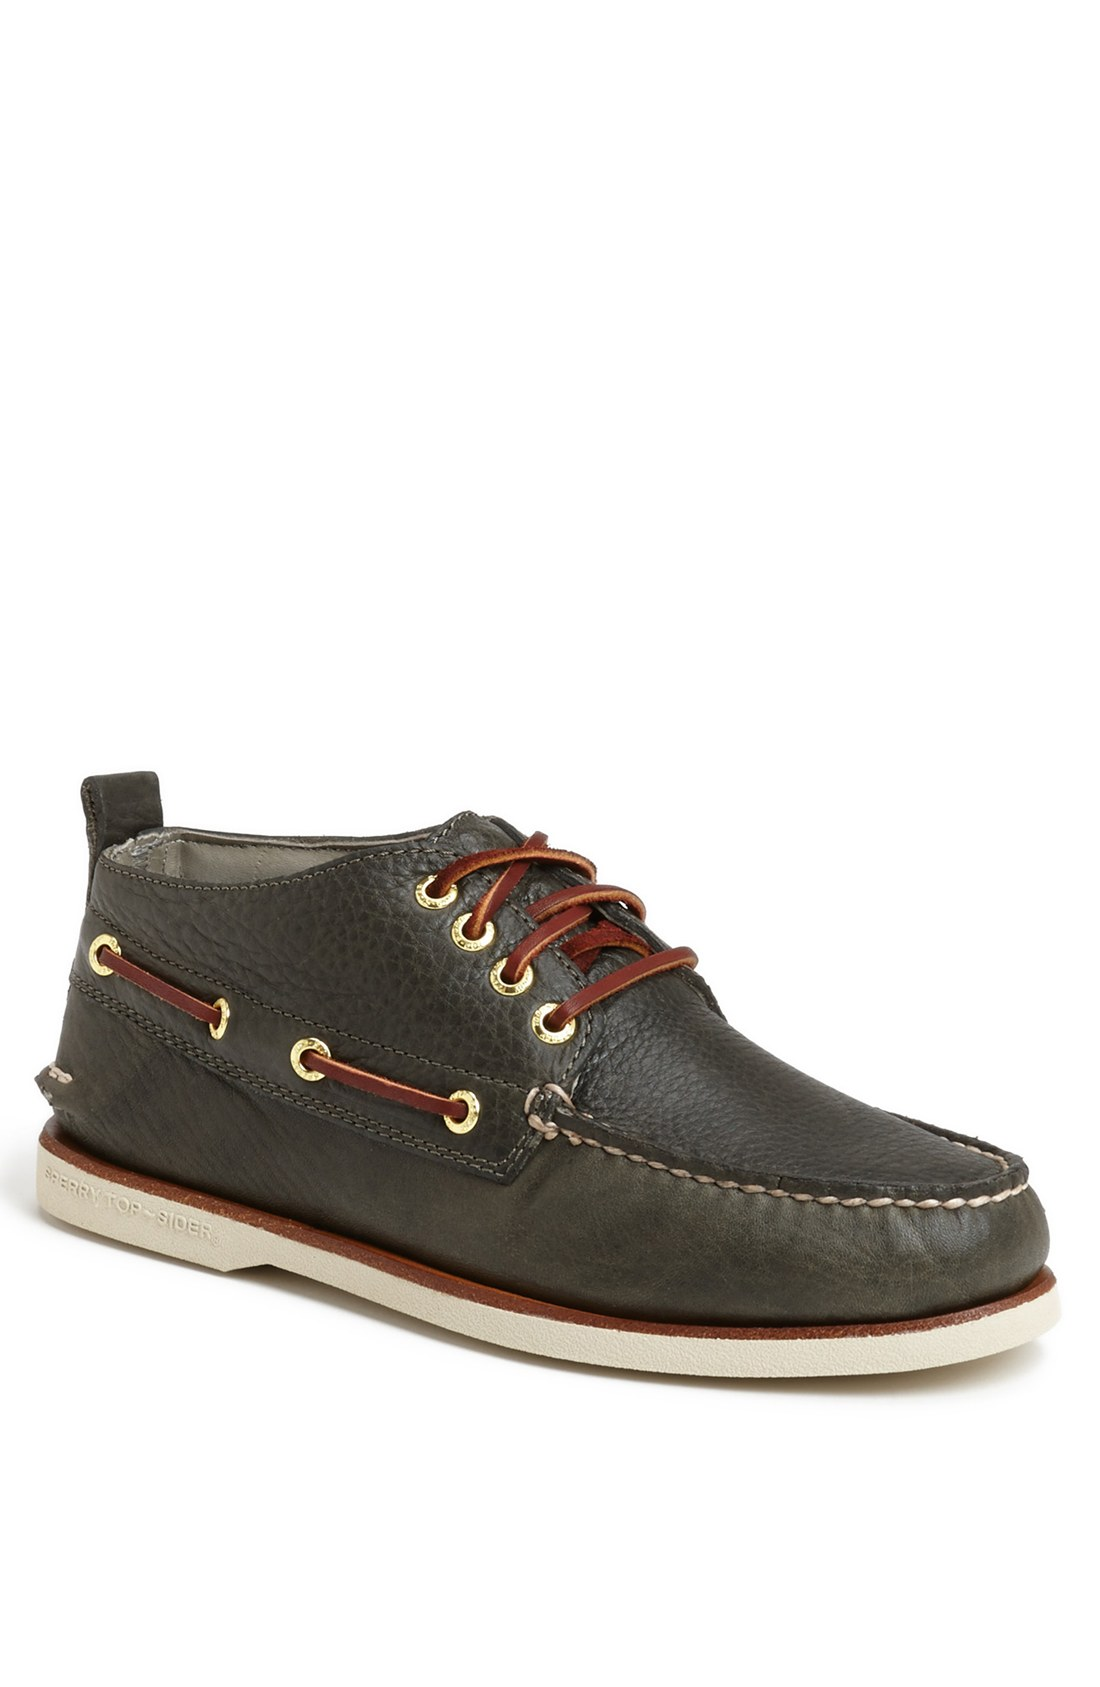 Sperry Top Sider Men S Gold Cup Chukka Boot In Gray For